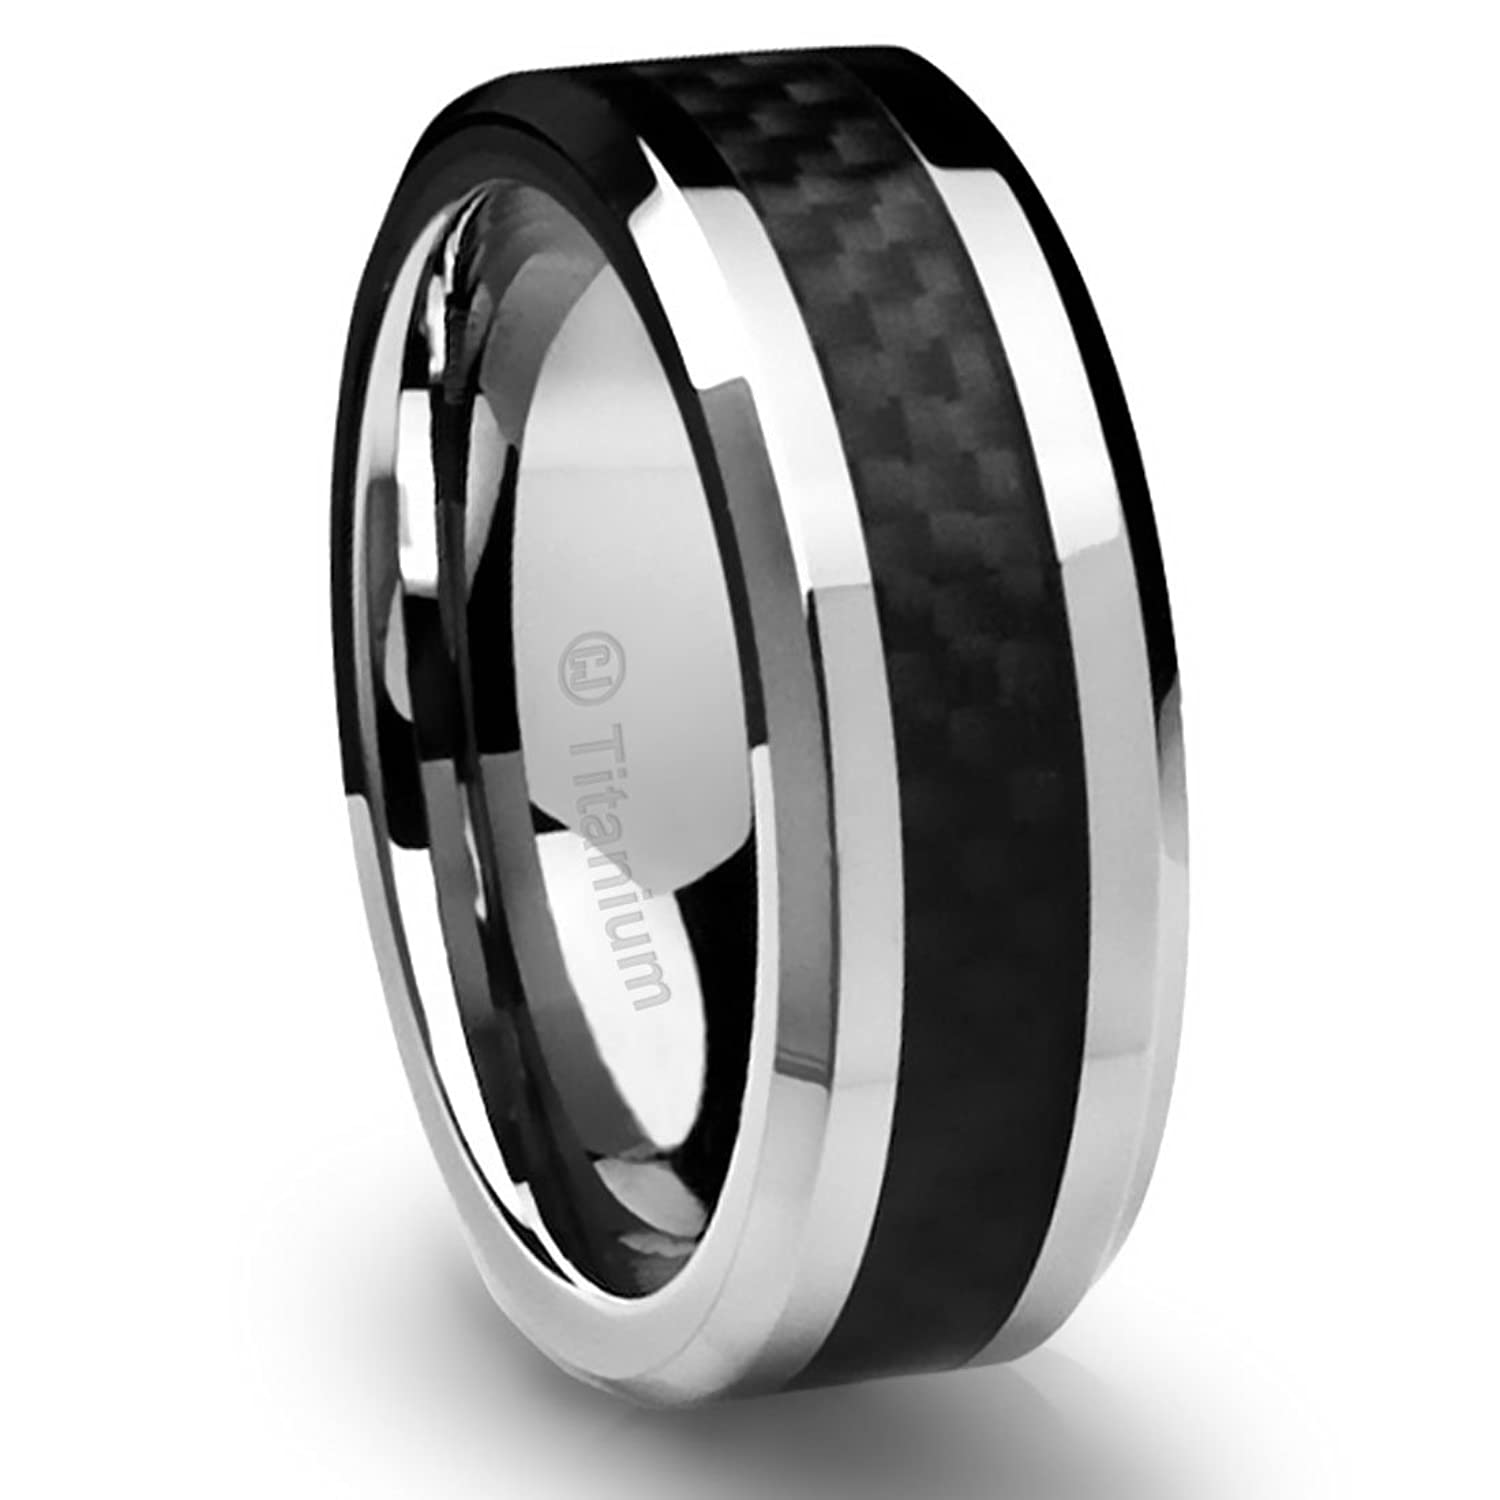 8MM Mens Titanium Ring Wedding Band Black Carbon Fiber Inlay and